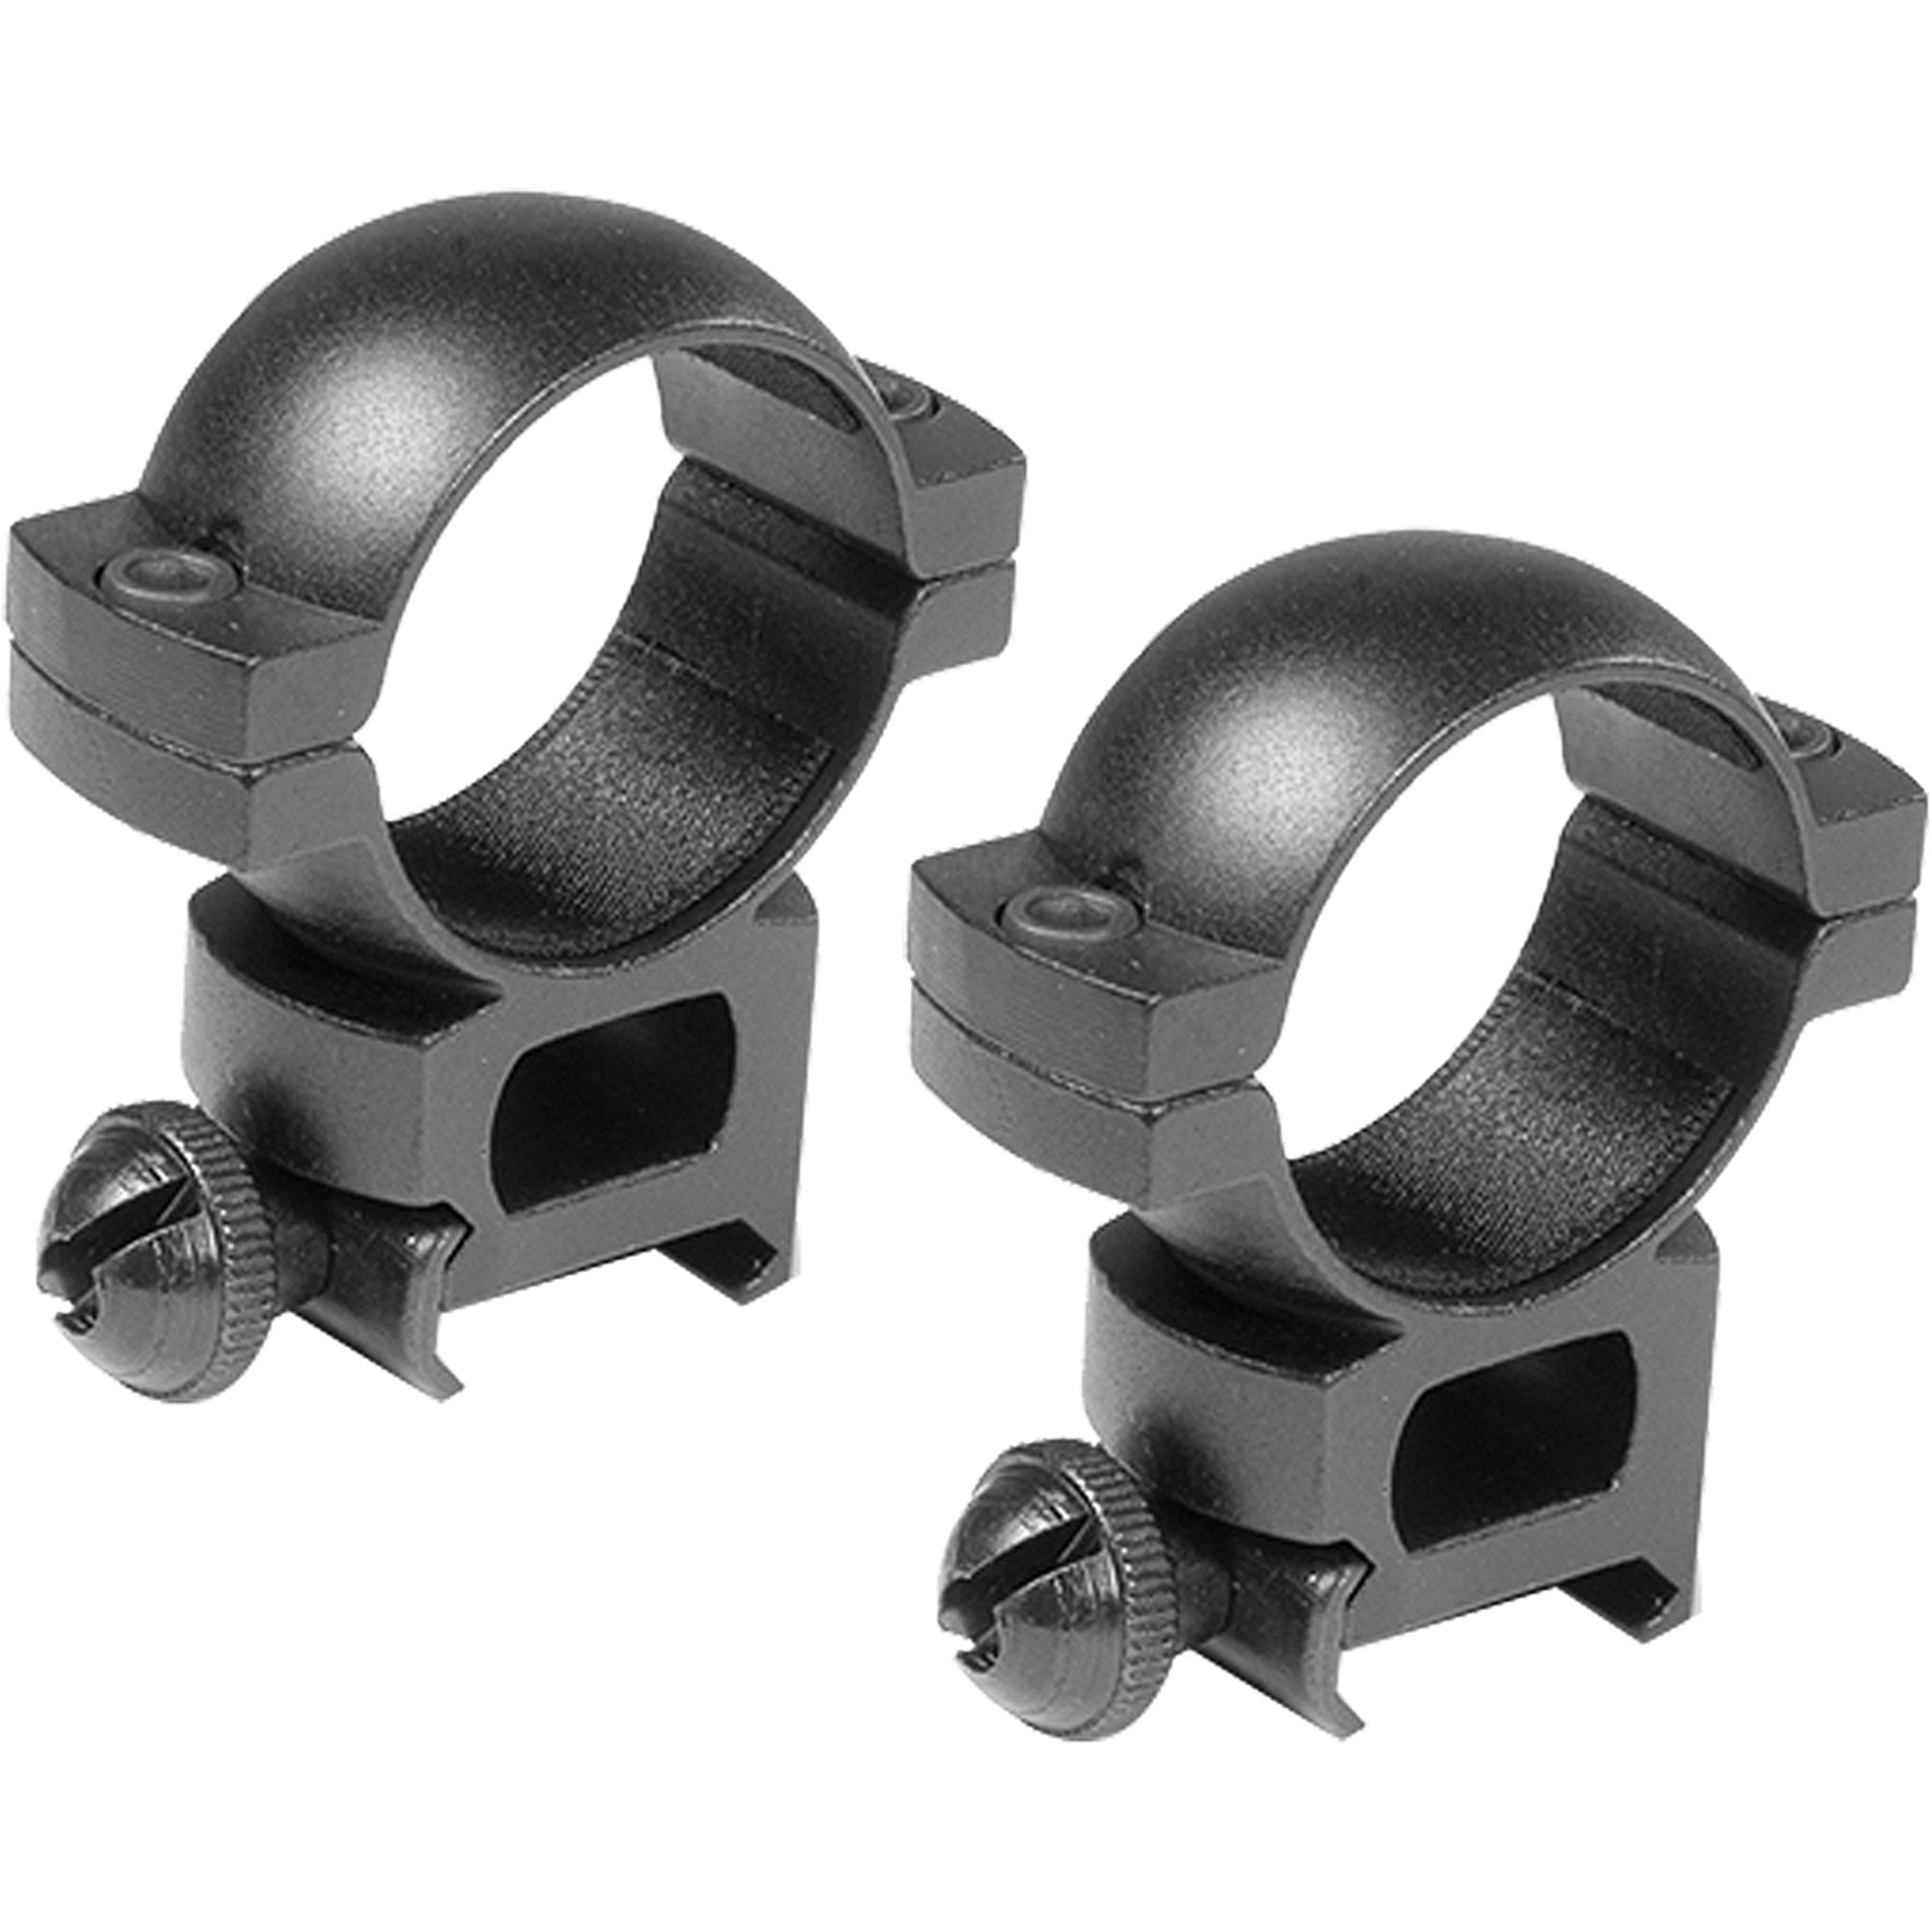 Barska Optics 30mm X-High Weaver Style Scope Rings